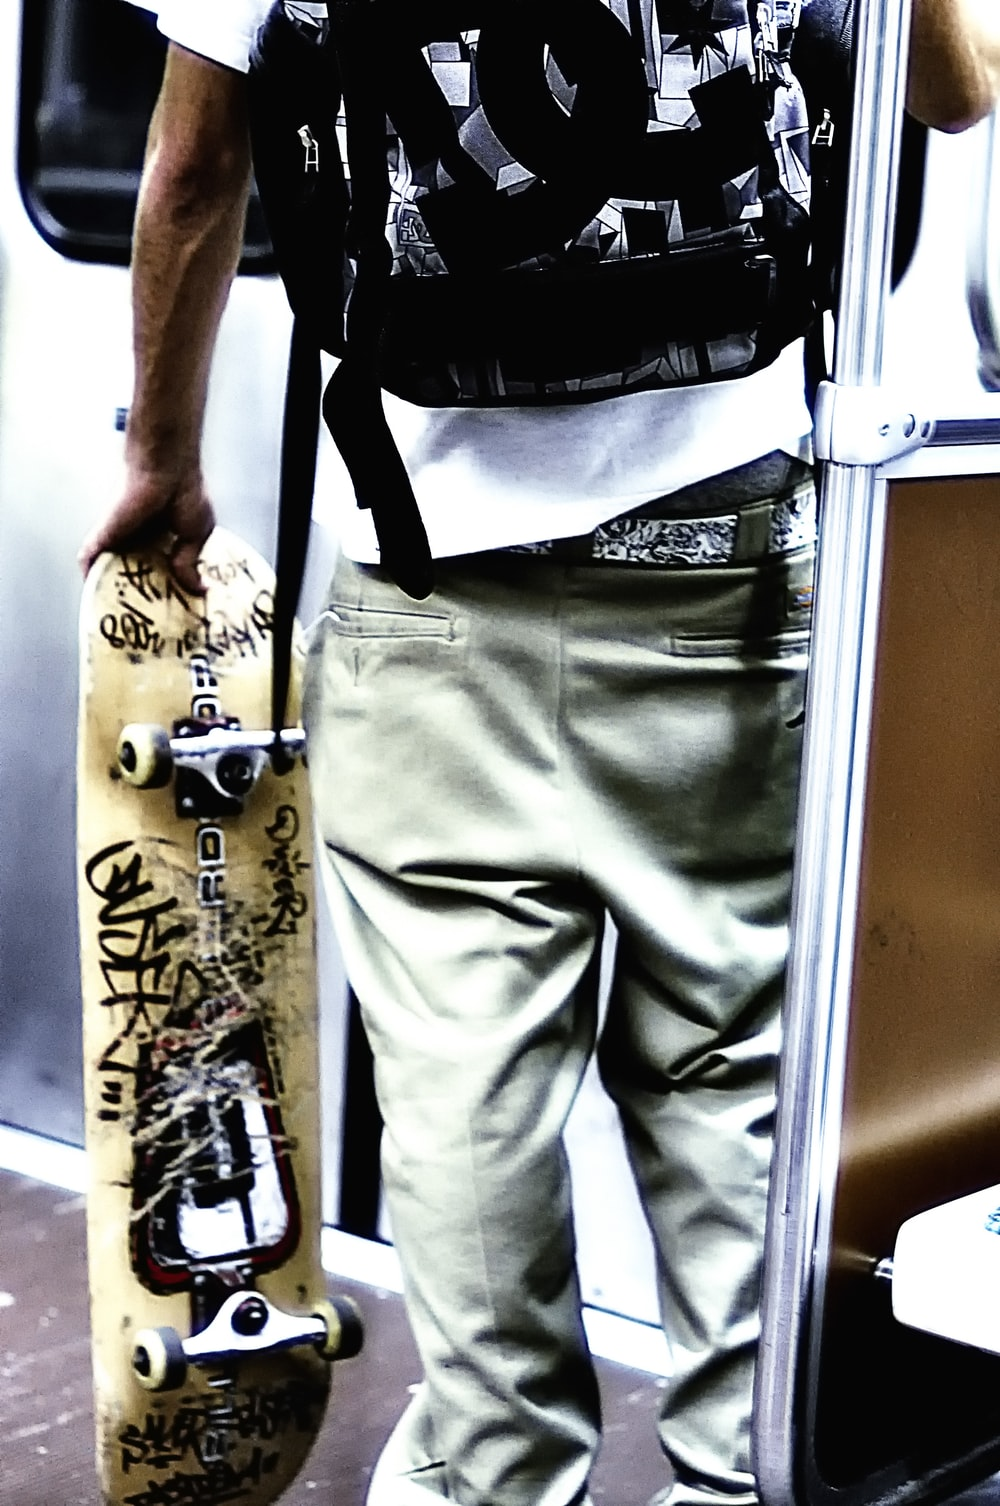 unknown person holding brown skateboard